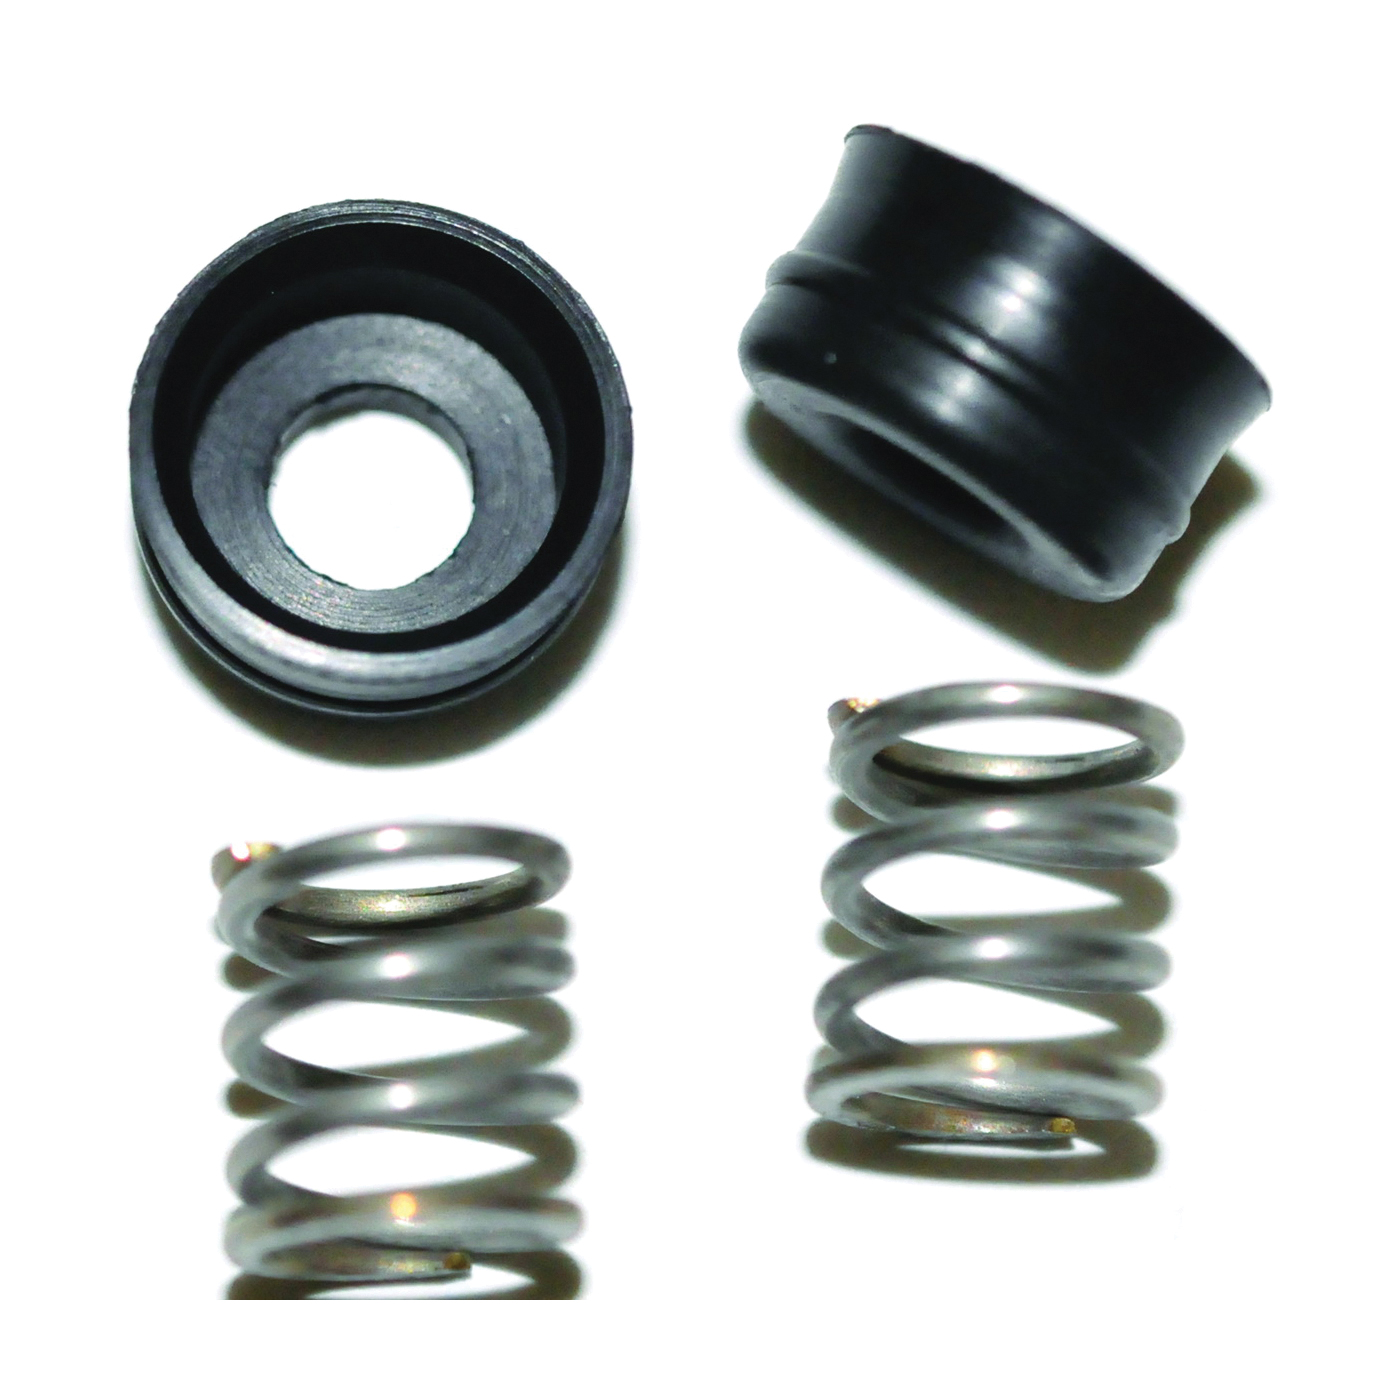 Picture of Danco 80704 Seat and Spring Repair Kit, Faucet, Plastic/Rubber/Stainless Steel, For: Delta Delux Two-Handle Faucets